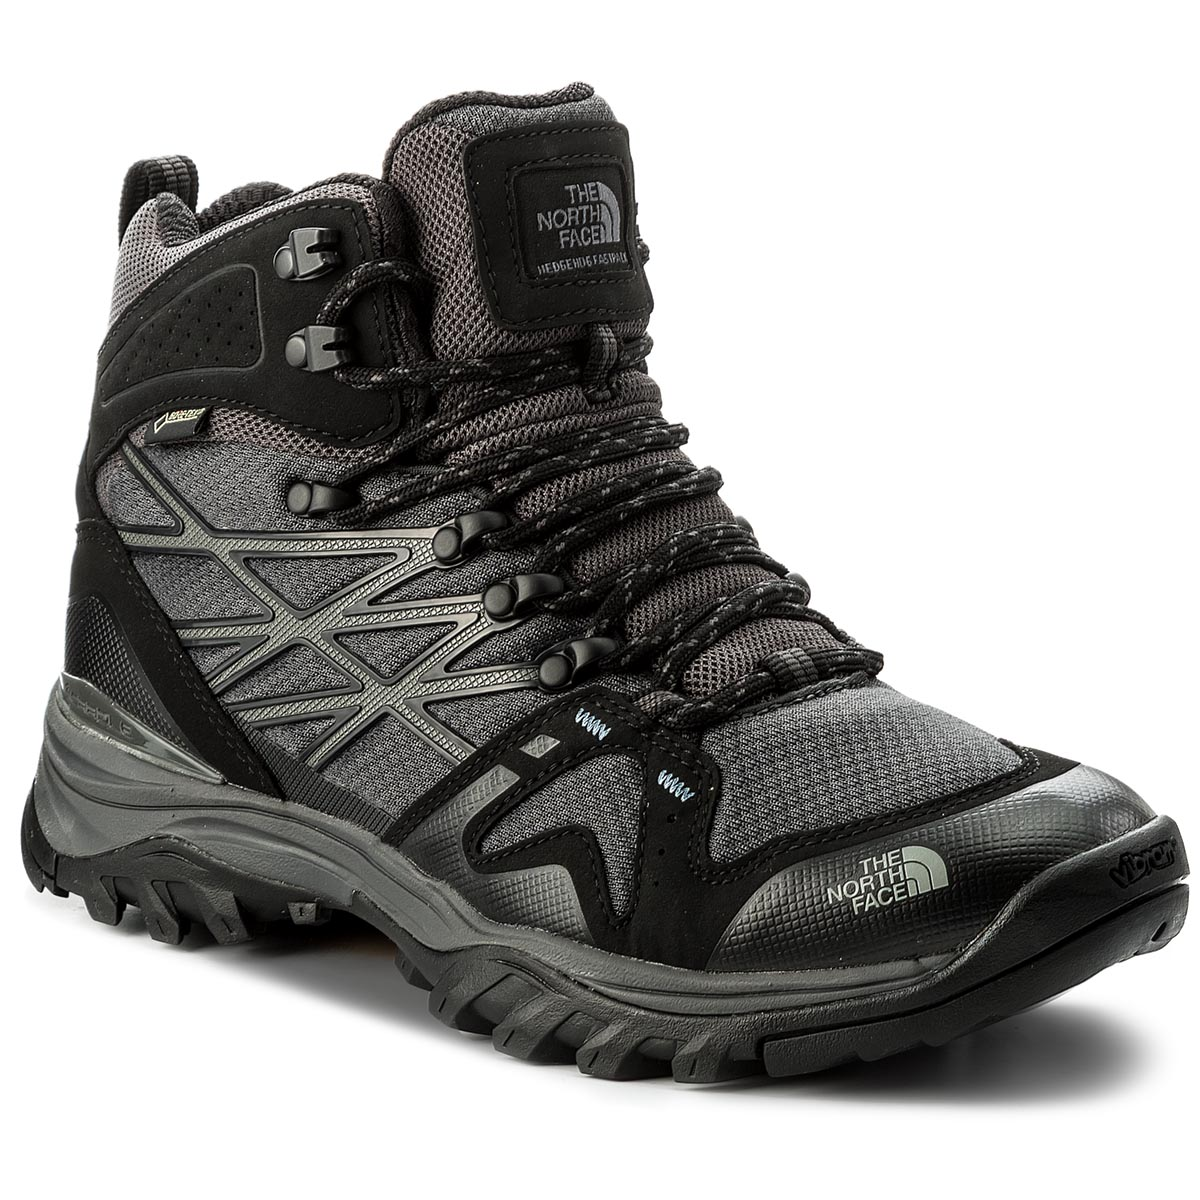 Trekkings THE NORTH FACE - Hedgehog Fastpack Mid Gtx (Eu) GORE-TEX NF0A3FXIZU5 Tnf Black/Dark Shadow Grey